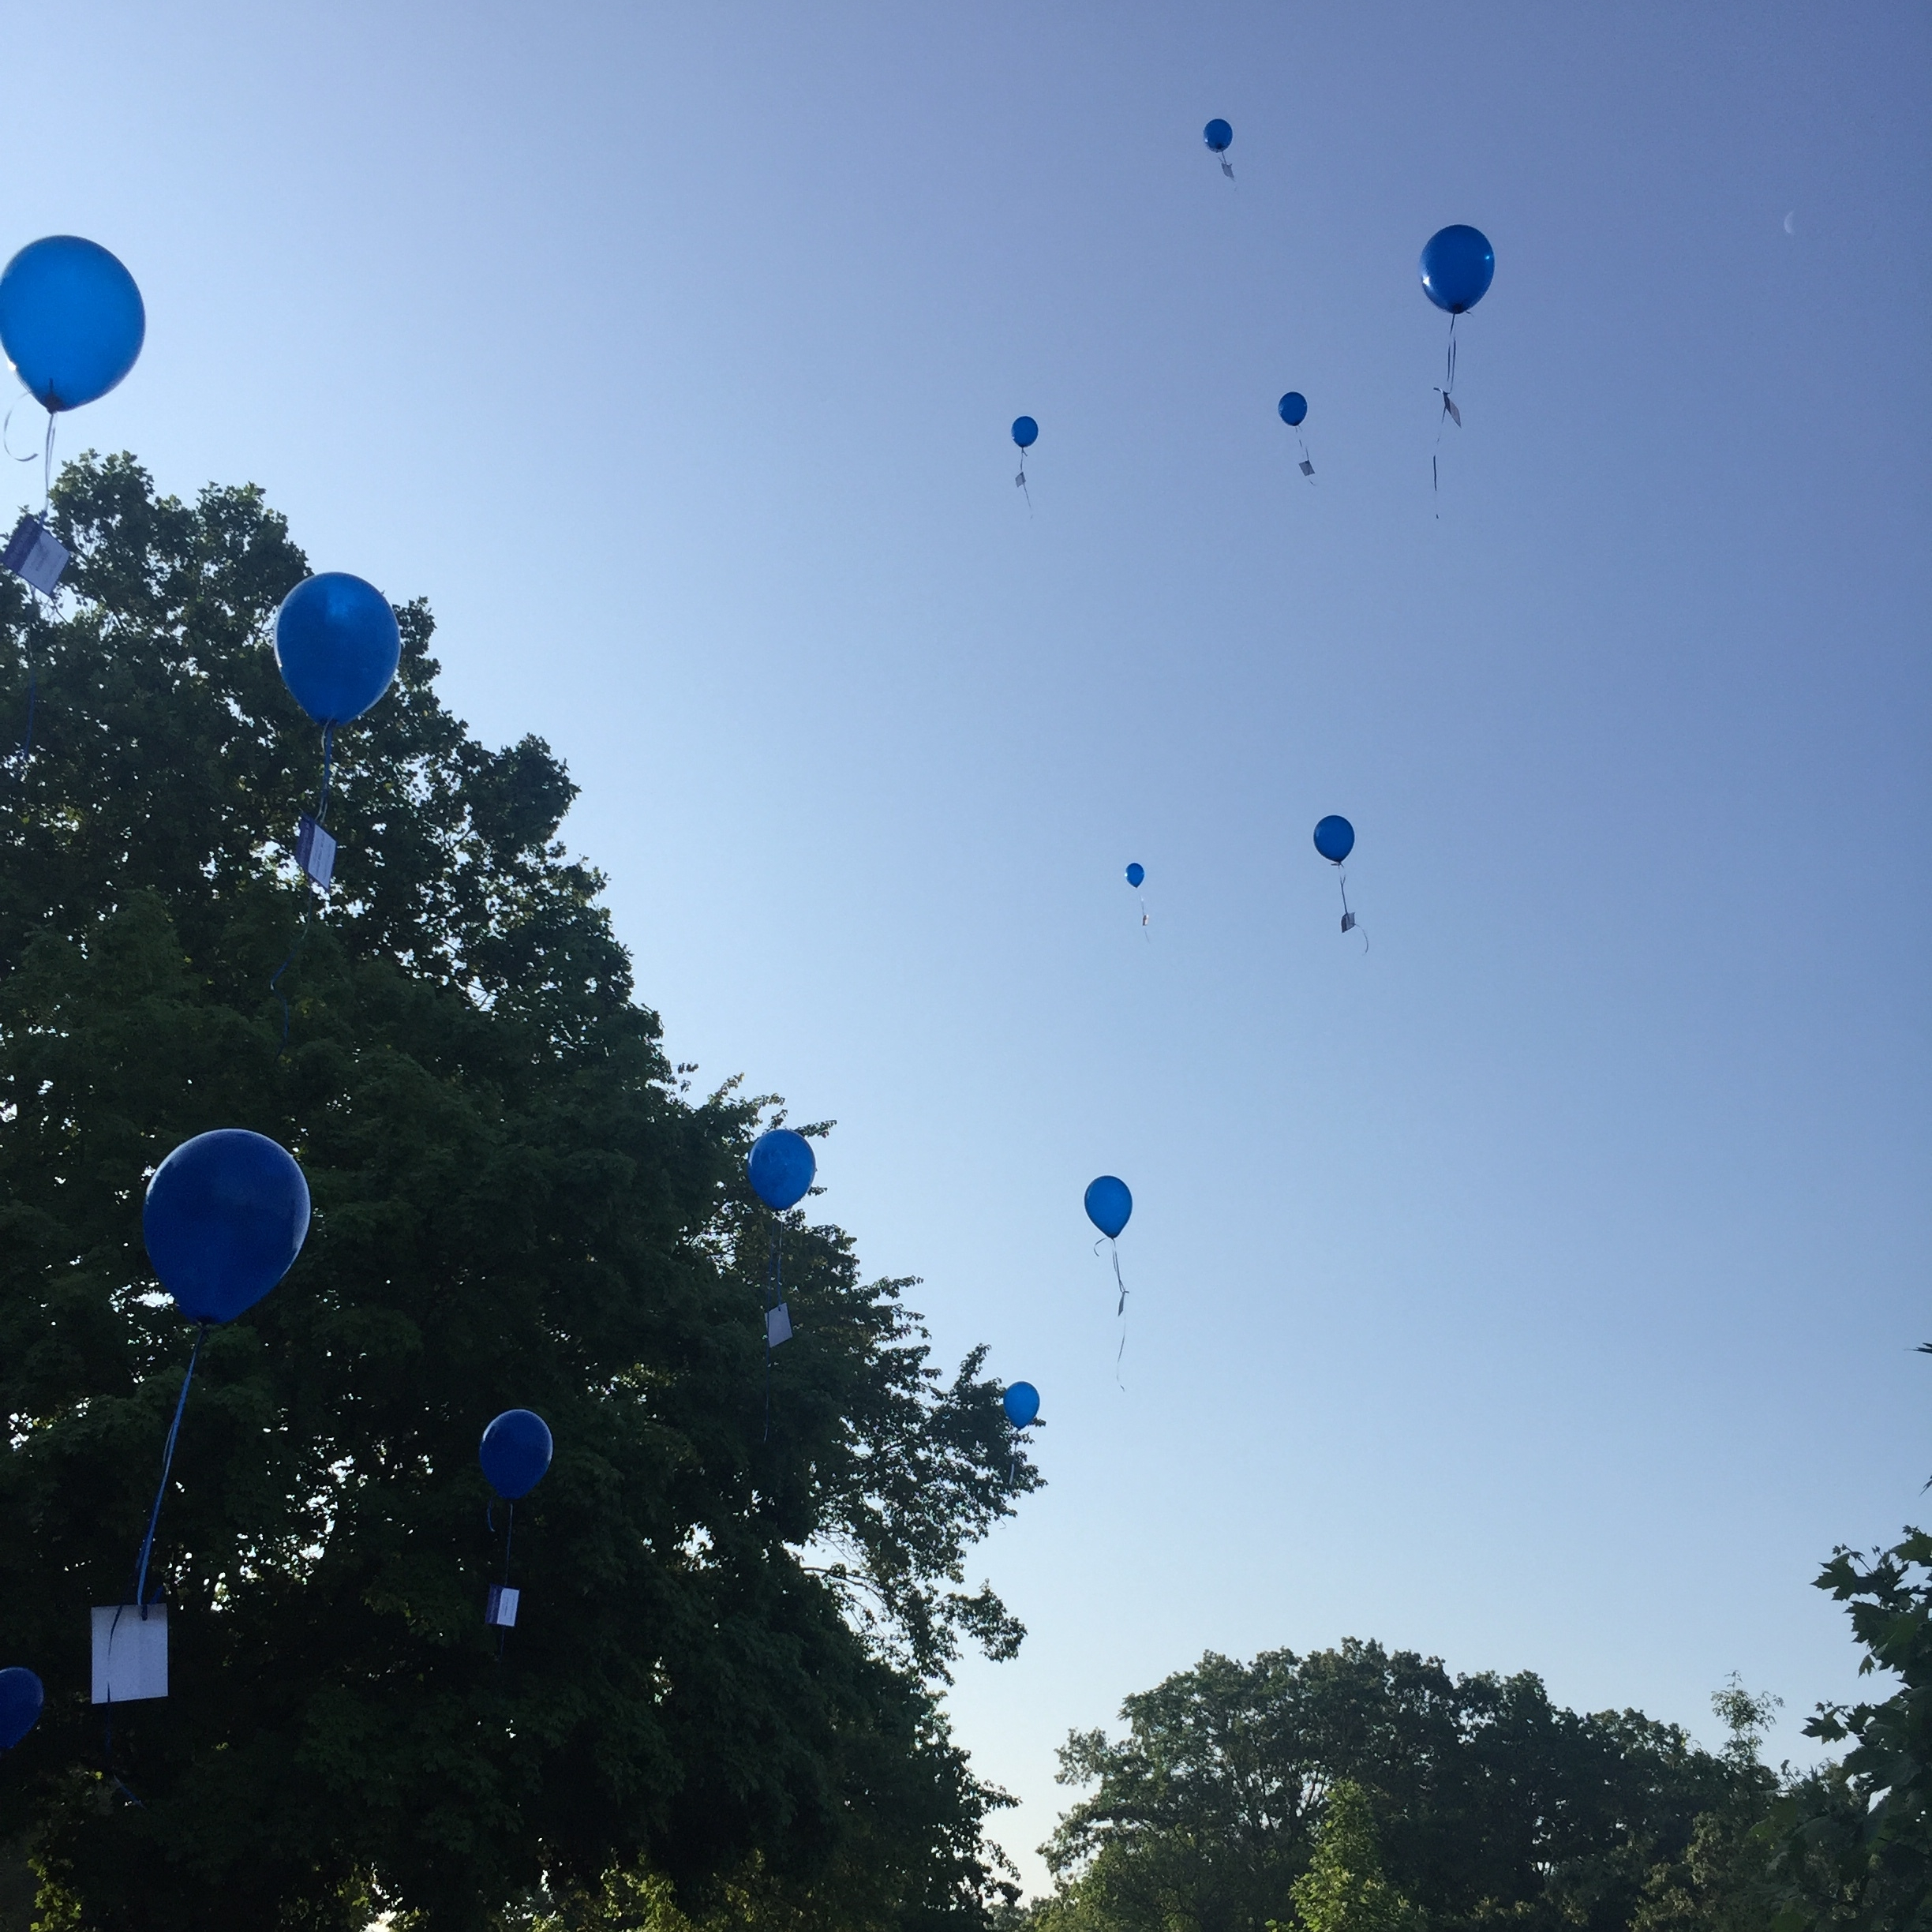 Balloons released in memory of those who have made the ultimate sacrifice in the line of duty